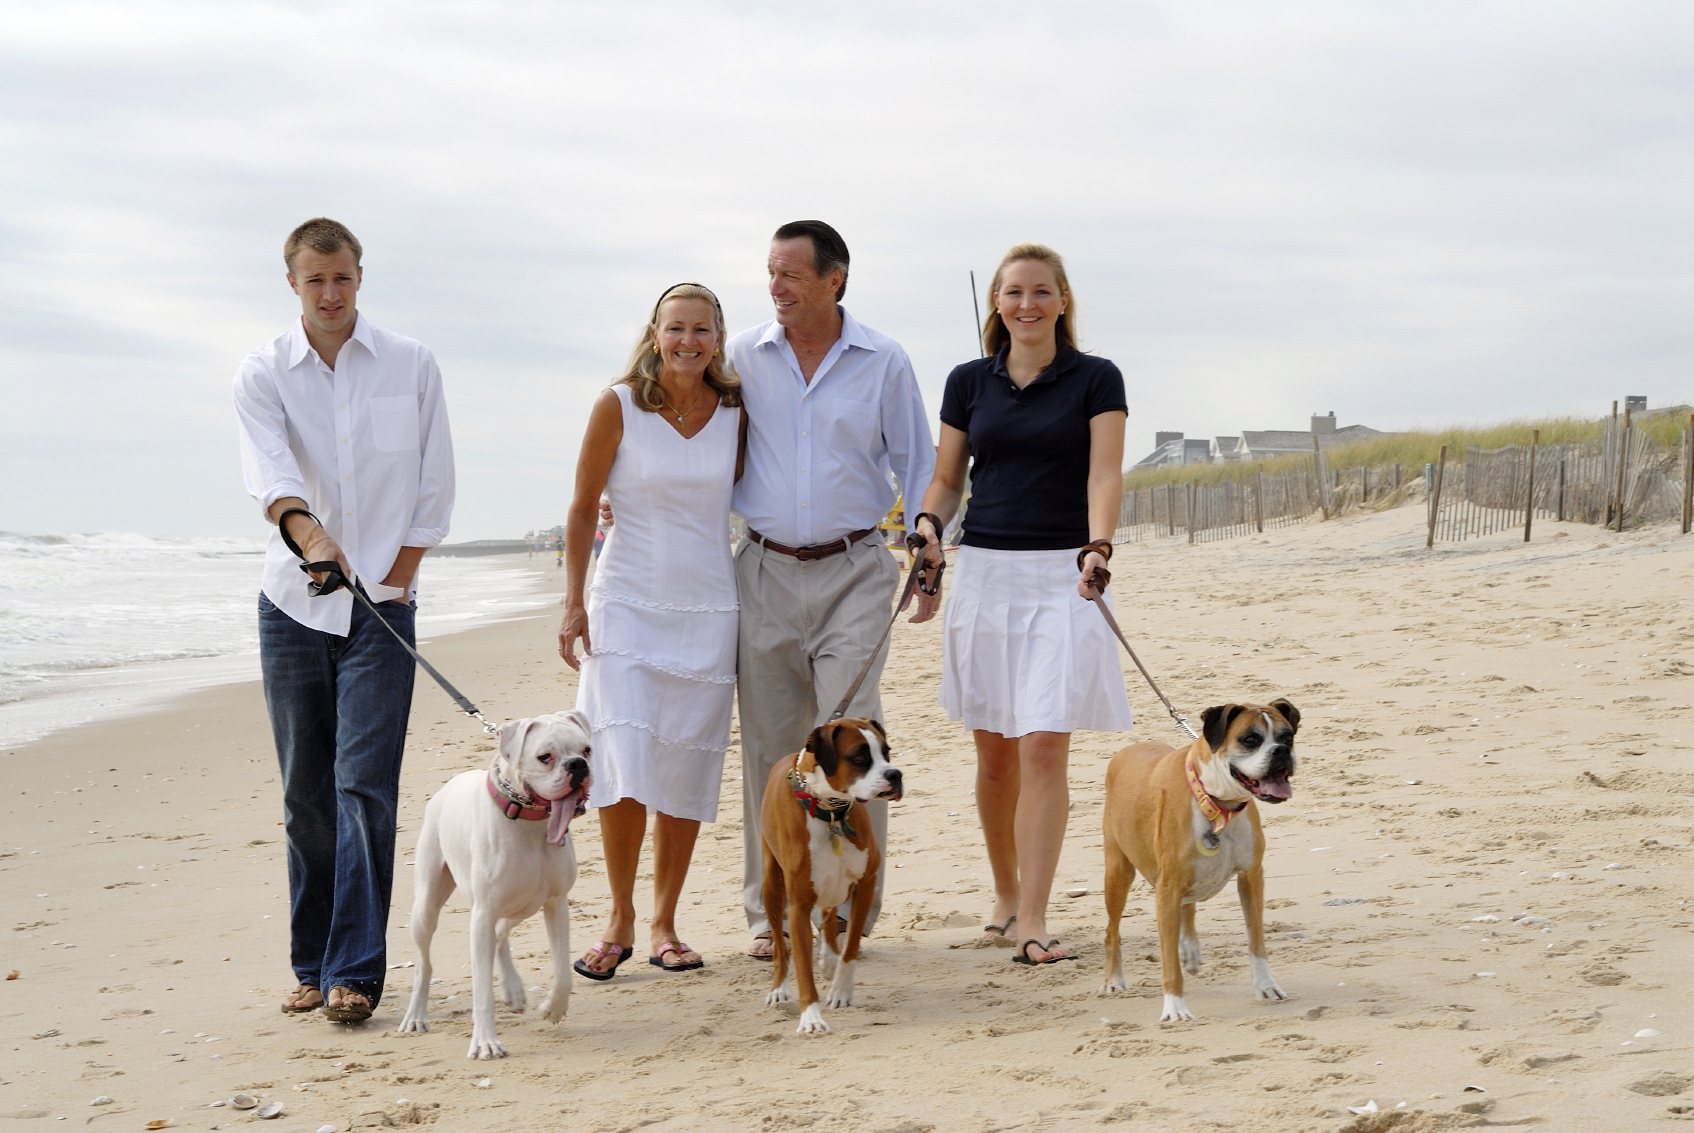 Family walking a dog on the beach